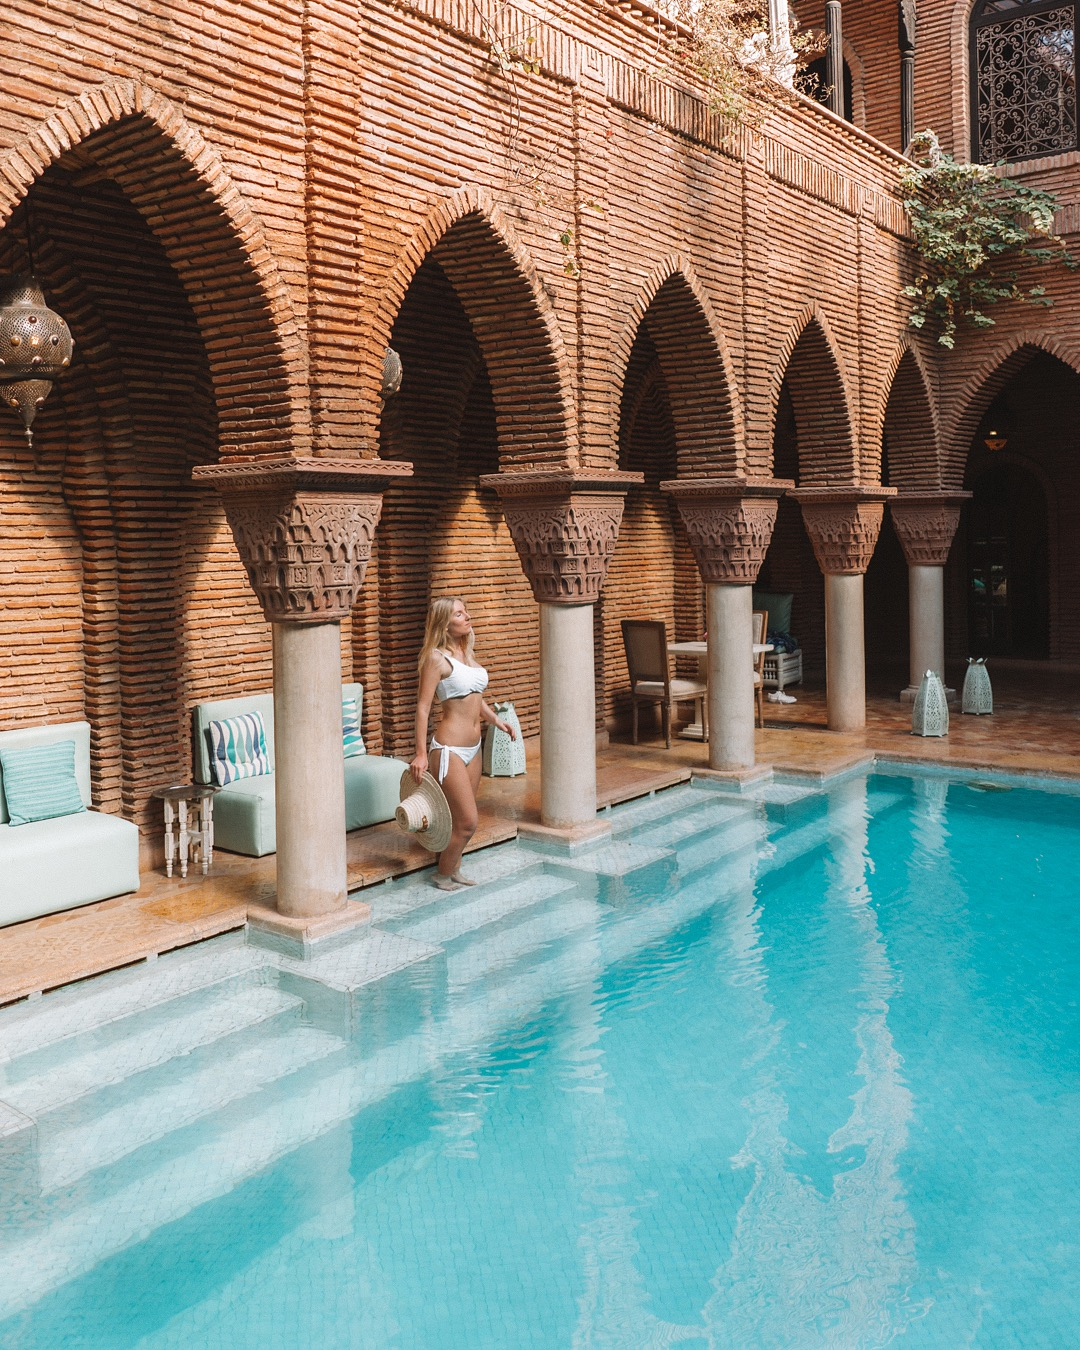 La Sultana pool best places to visit in Marrakech